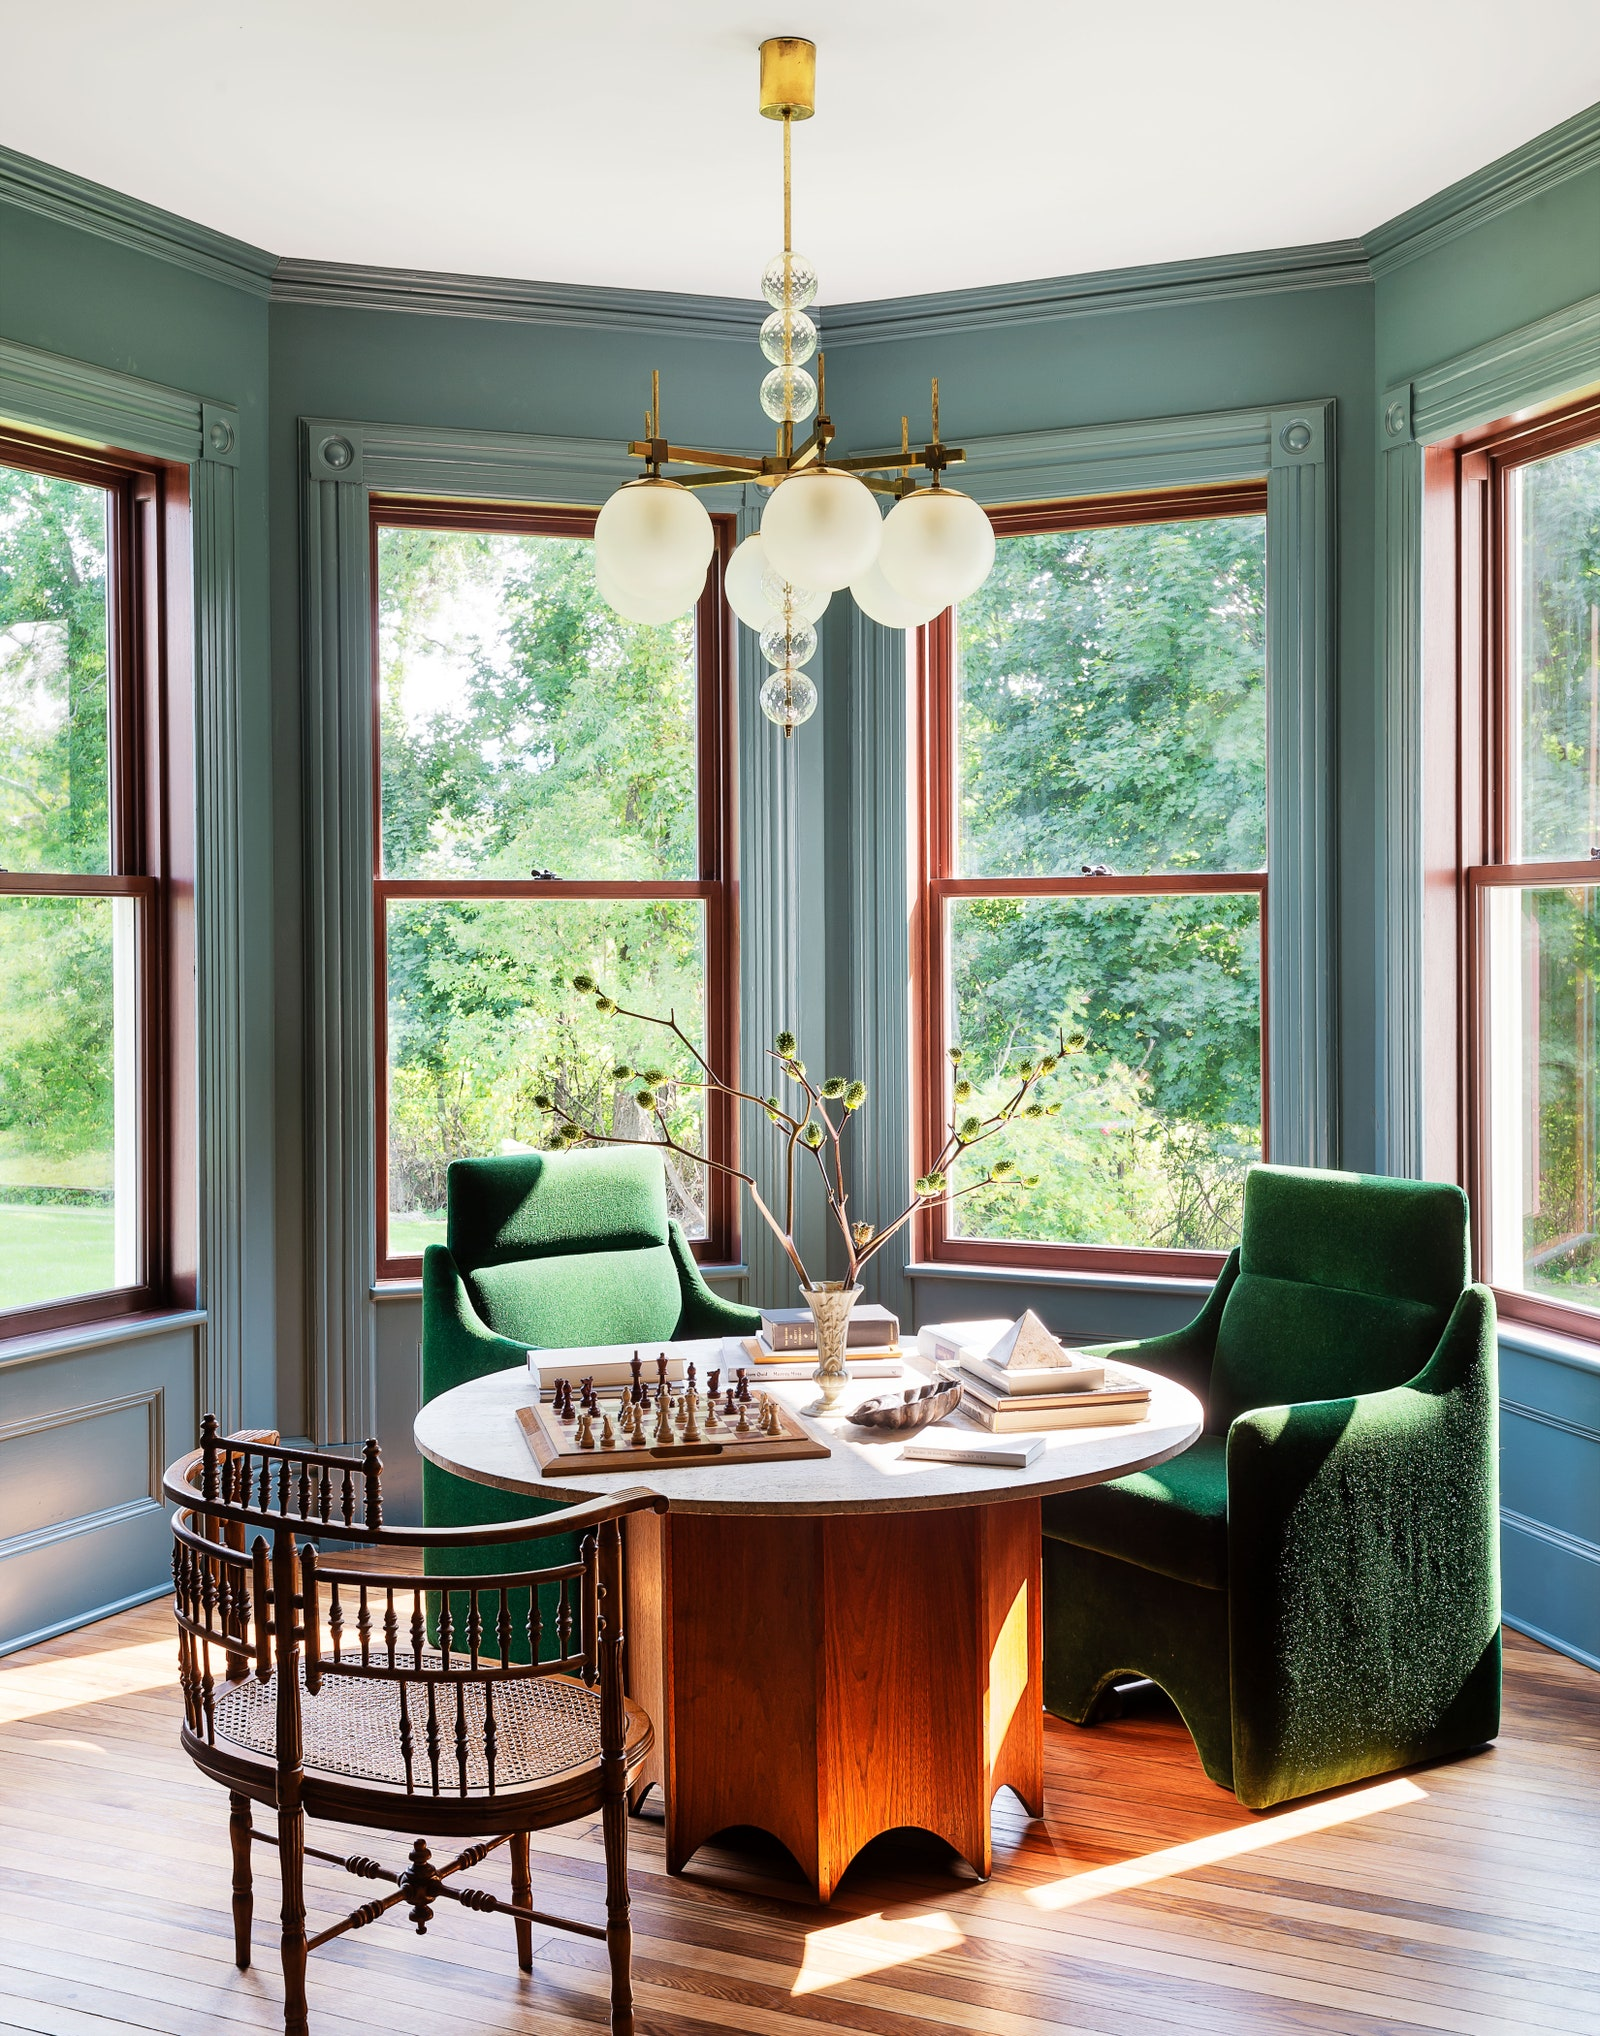 In the front parlor Luigi Caccia Dominioni chairs reupholstered in green mohair gather around a Harvey Probber games table.